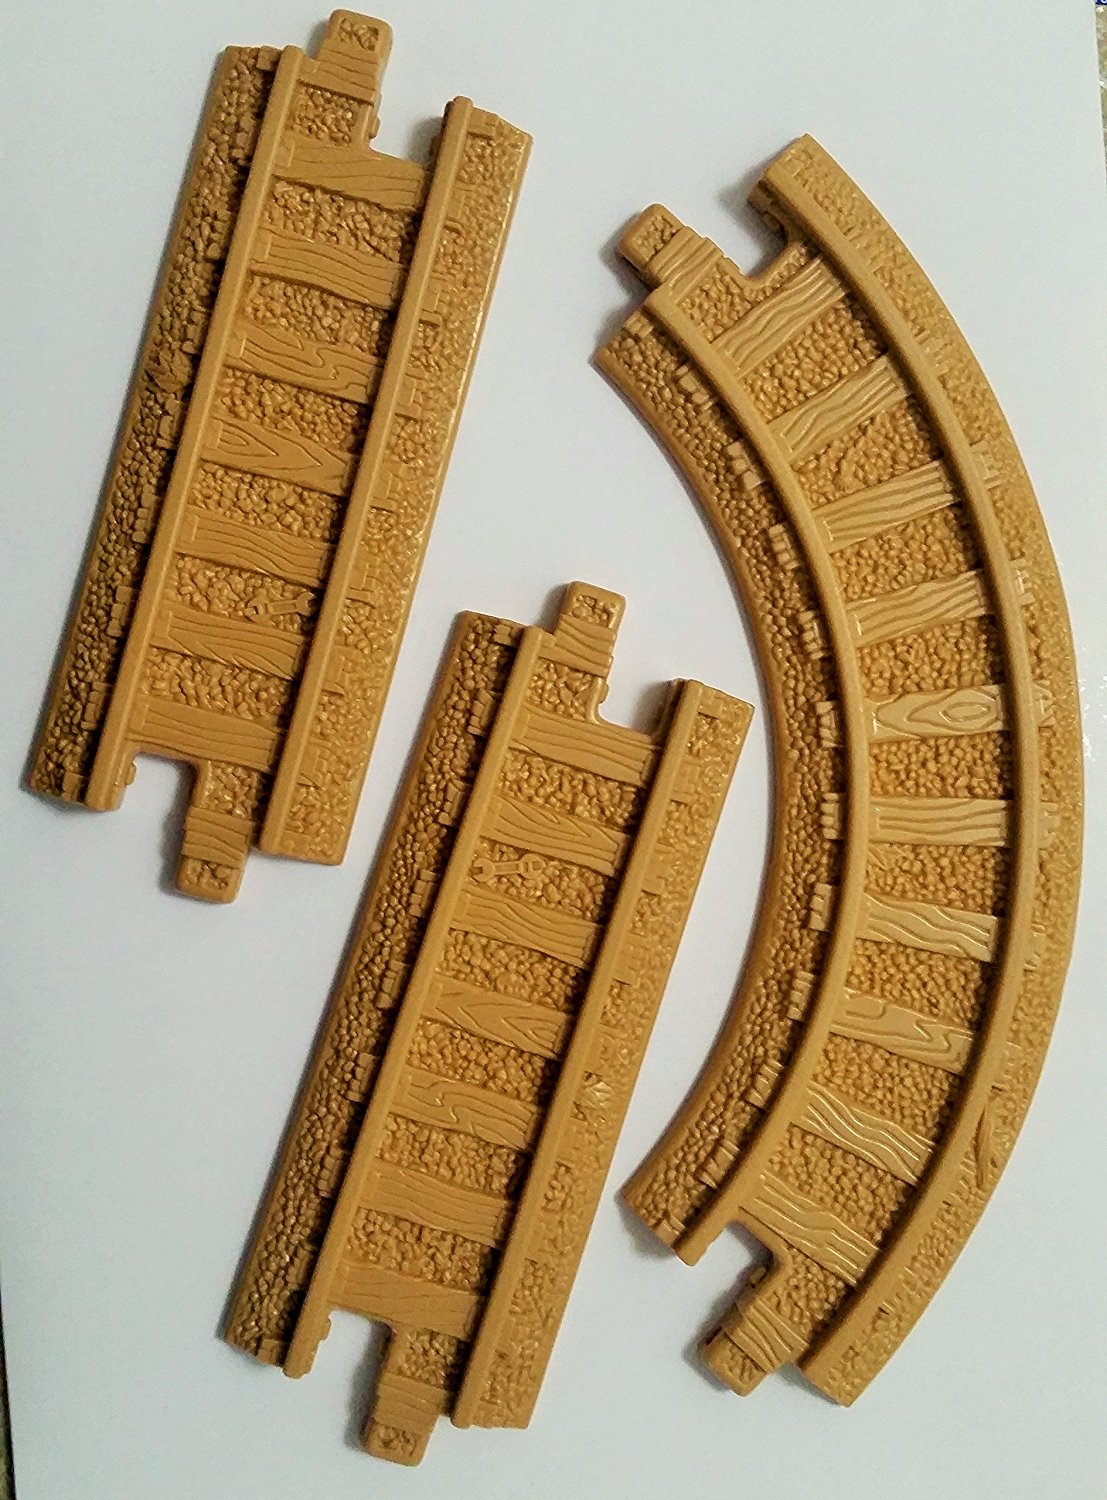 """GeoTrax Straight Six-Inch Curved 10"""" Track Segments (3) - Replacement Piece - Classic Fisher Price Geo Trax Collectible - Loose Out Of Package (OOP) Engine Cars Track Transportation Tracks"""